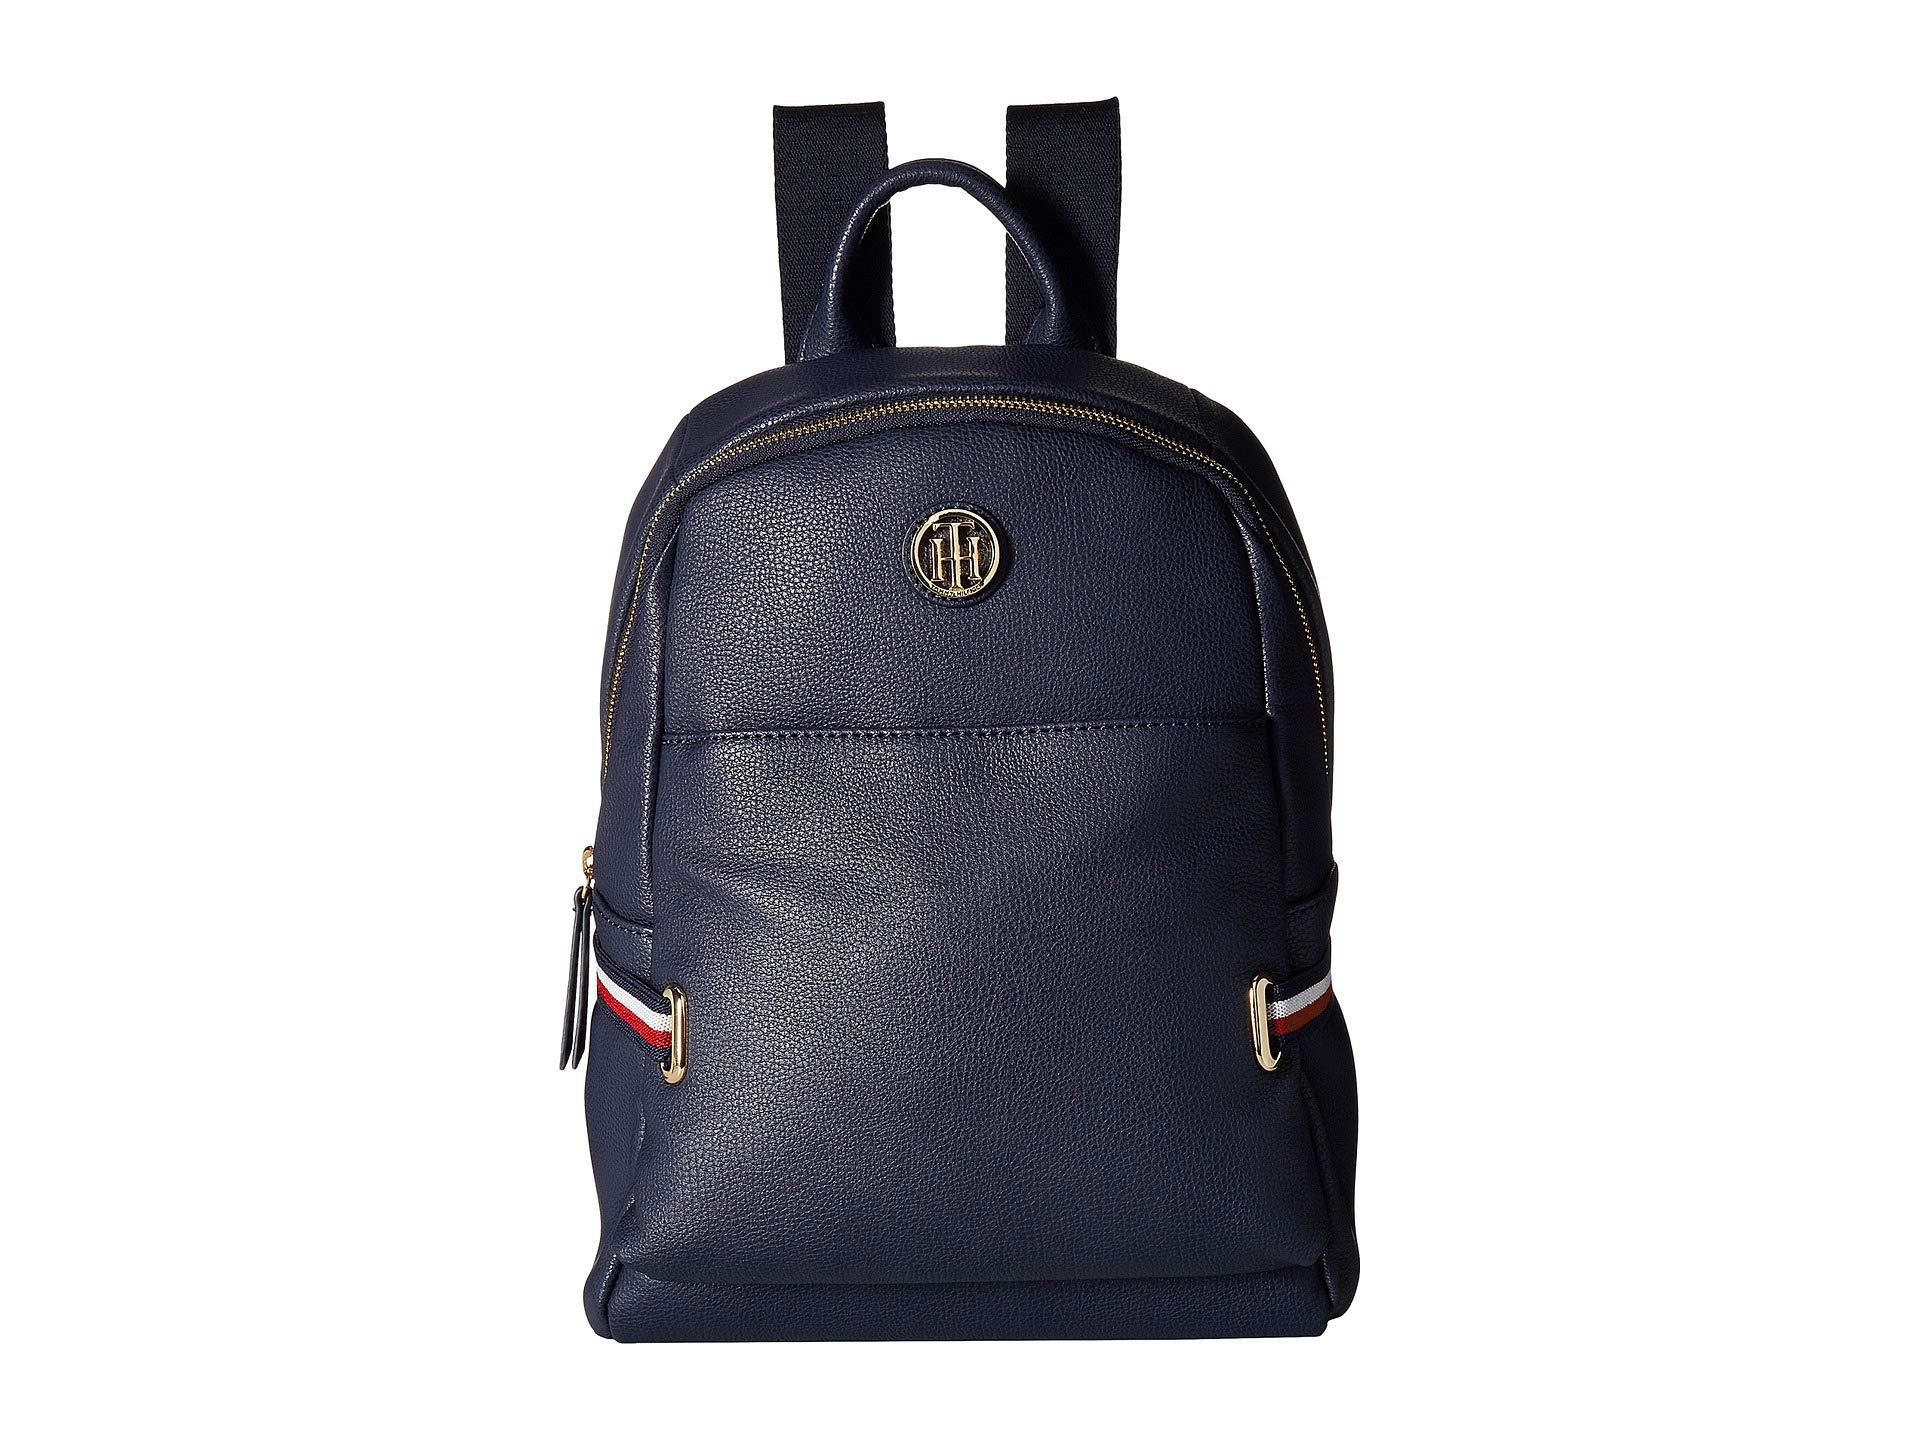 Lyst - Tommy Hilfiger Sanford Backpack in Blue e7de2bffc0939